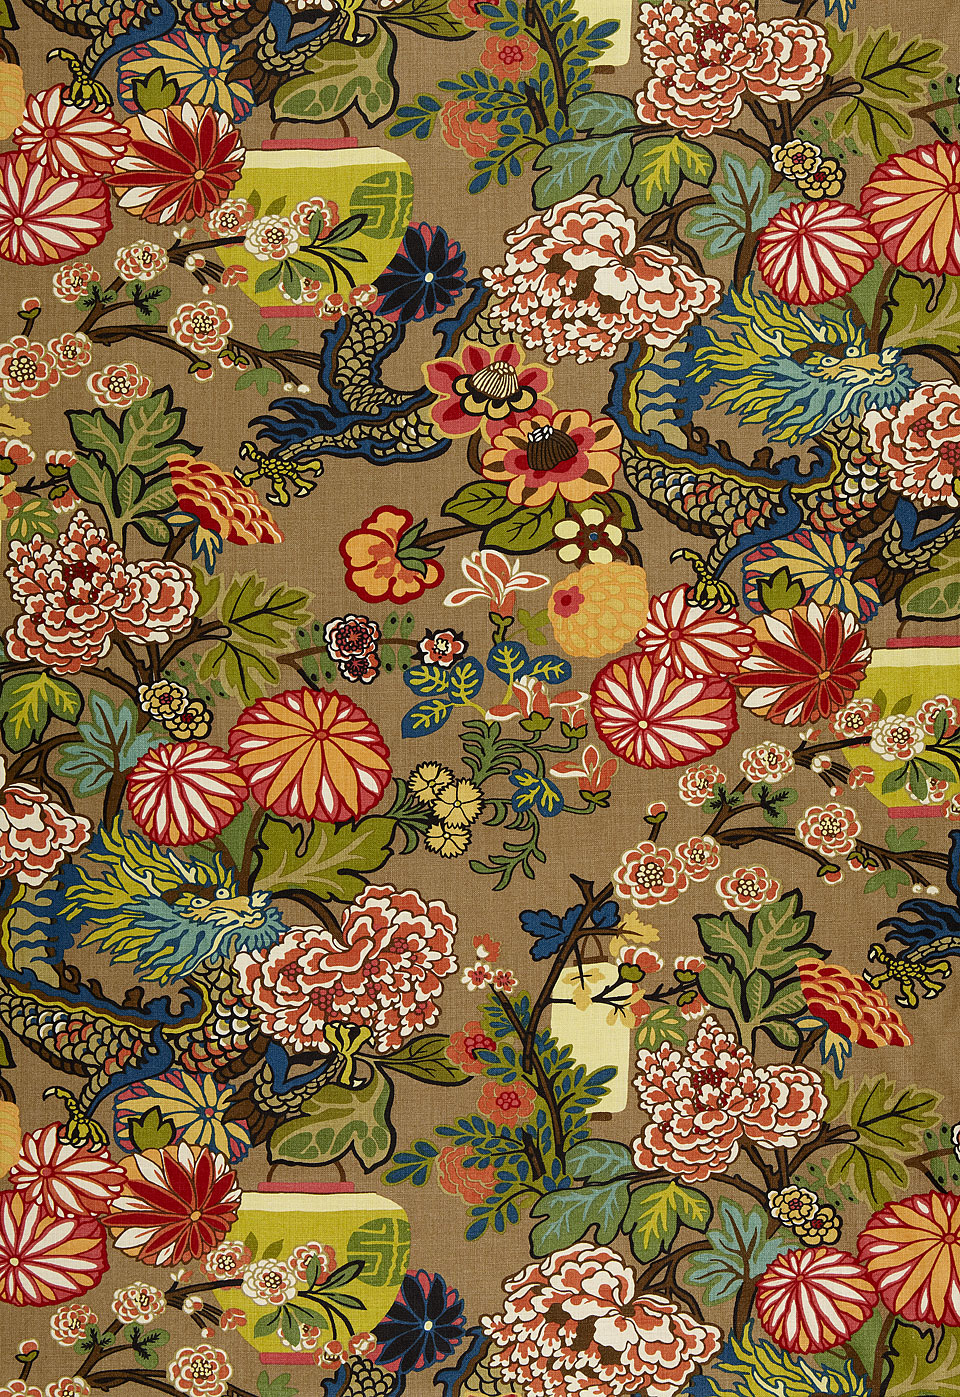 Inspirational Fabric - the Fabric that continues to inspire drapery, ottomans, bedding, wall-covering, pillows - We love Schumacher's Chiang Mai Dragon